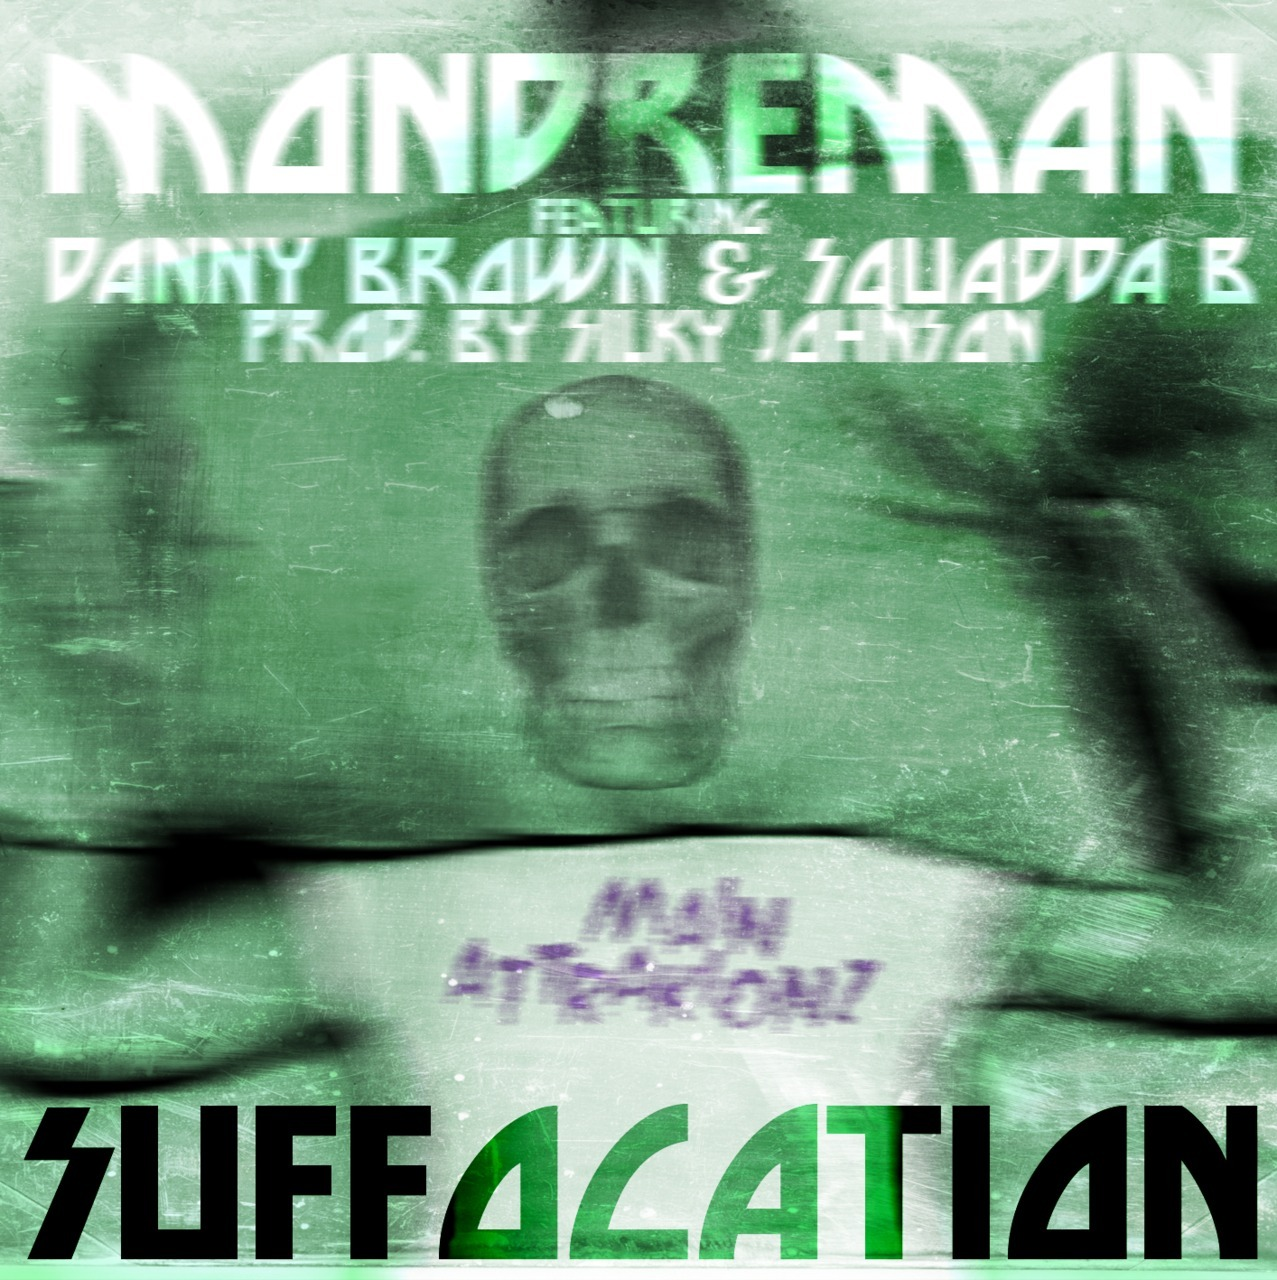 "<a href=""http://dreamcollabo.bandcamp.com/track/bonus-track-suffocation-ft-danny-brown-squadda-b-silky-johnson"" _mce_href=""http://dreamcollabo.bandcamp.com/track/bonus-track-suffocation-ft-danny-brown-squadda-b-silky-johnson"">[BONUS TRACK] Suffocation ft. Danny Brown + Squadda B :: Silky Johnson :: by MondreM.A.N.</a> IT'S FREE SHOUTS OUT TO @AREBLEFT FOR THE ARTWORK"